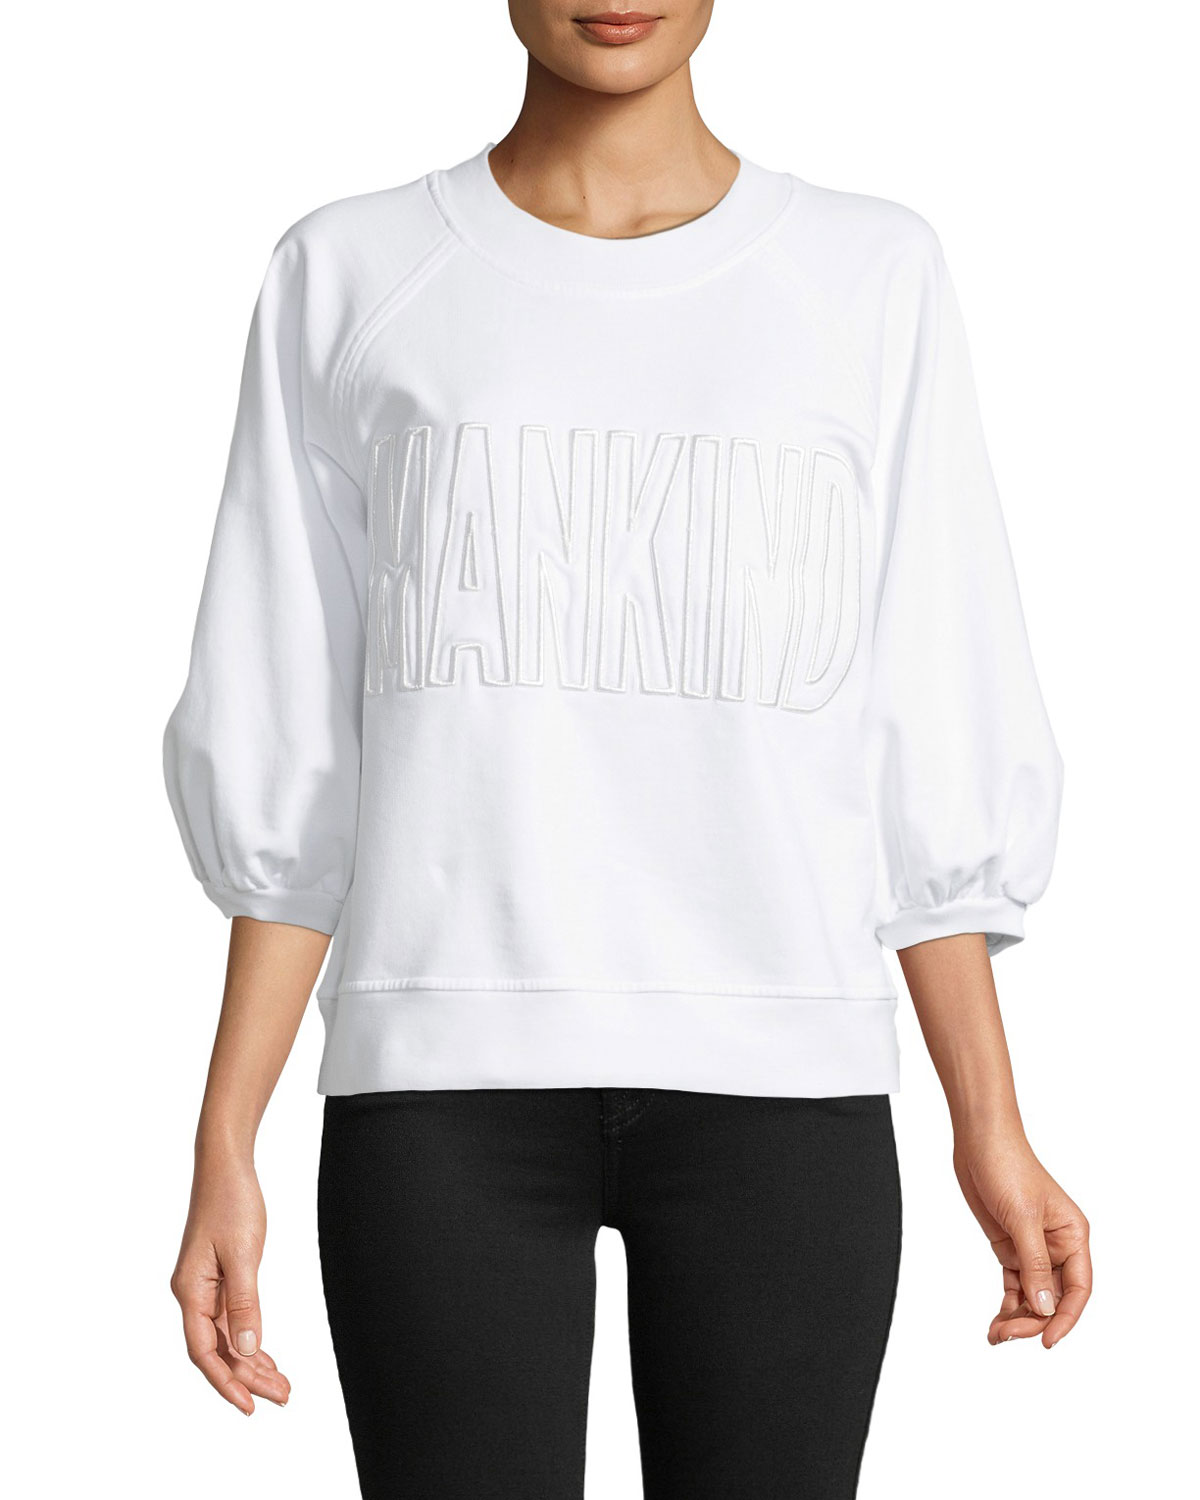 Mankind Embroidered 3/4 Puff Sleeve Sweatshirt